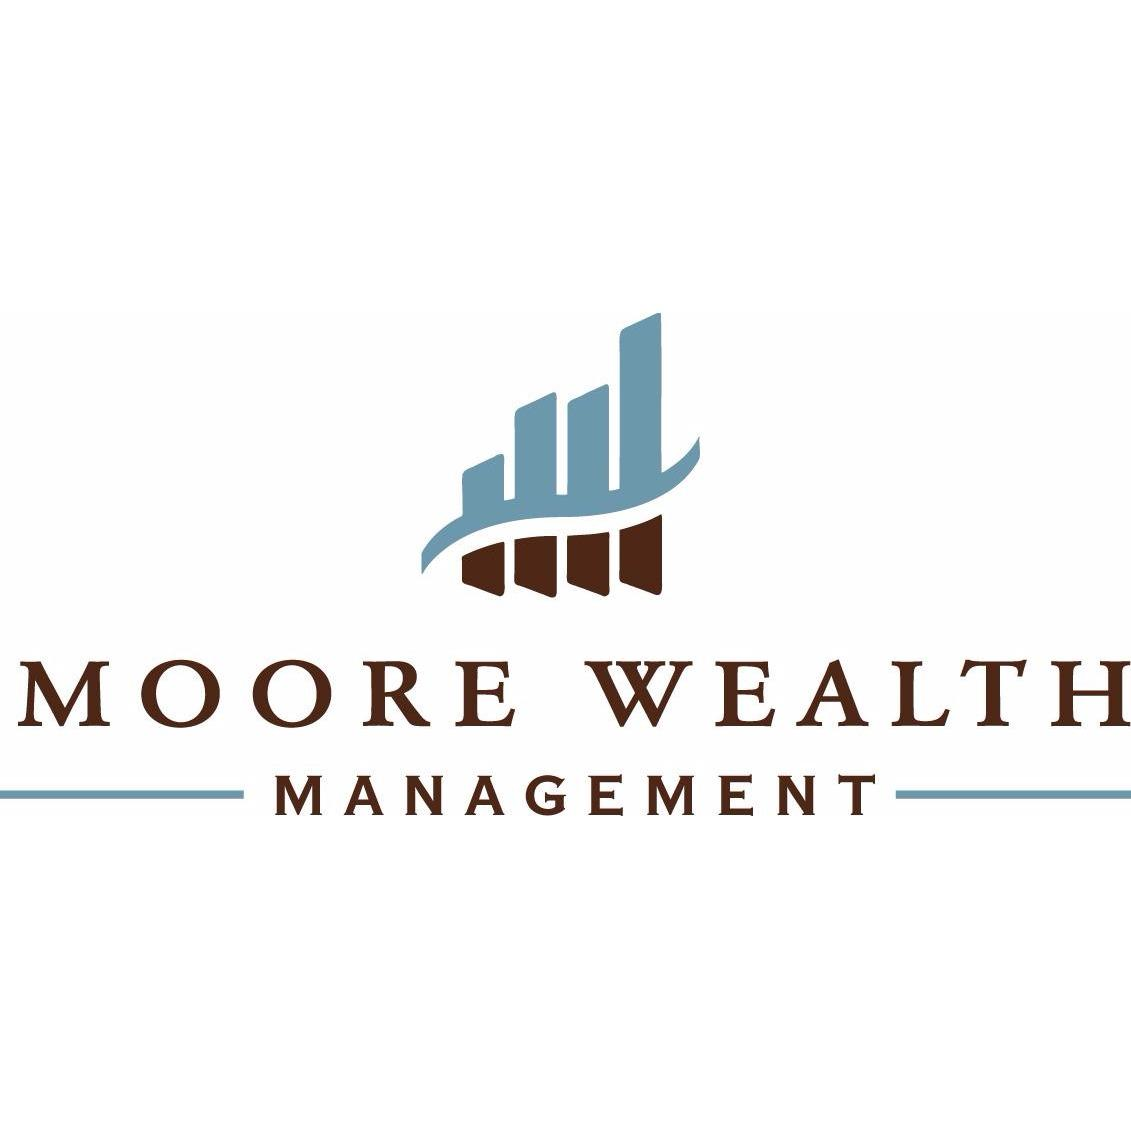 Moore Wealth Management, Inc.